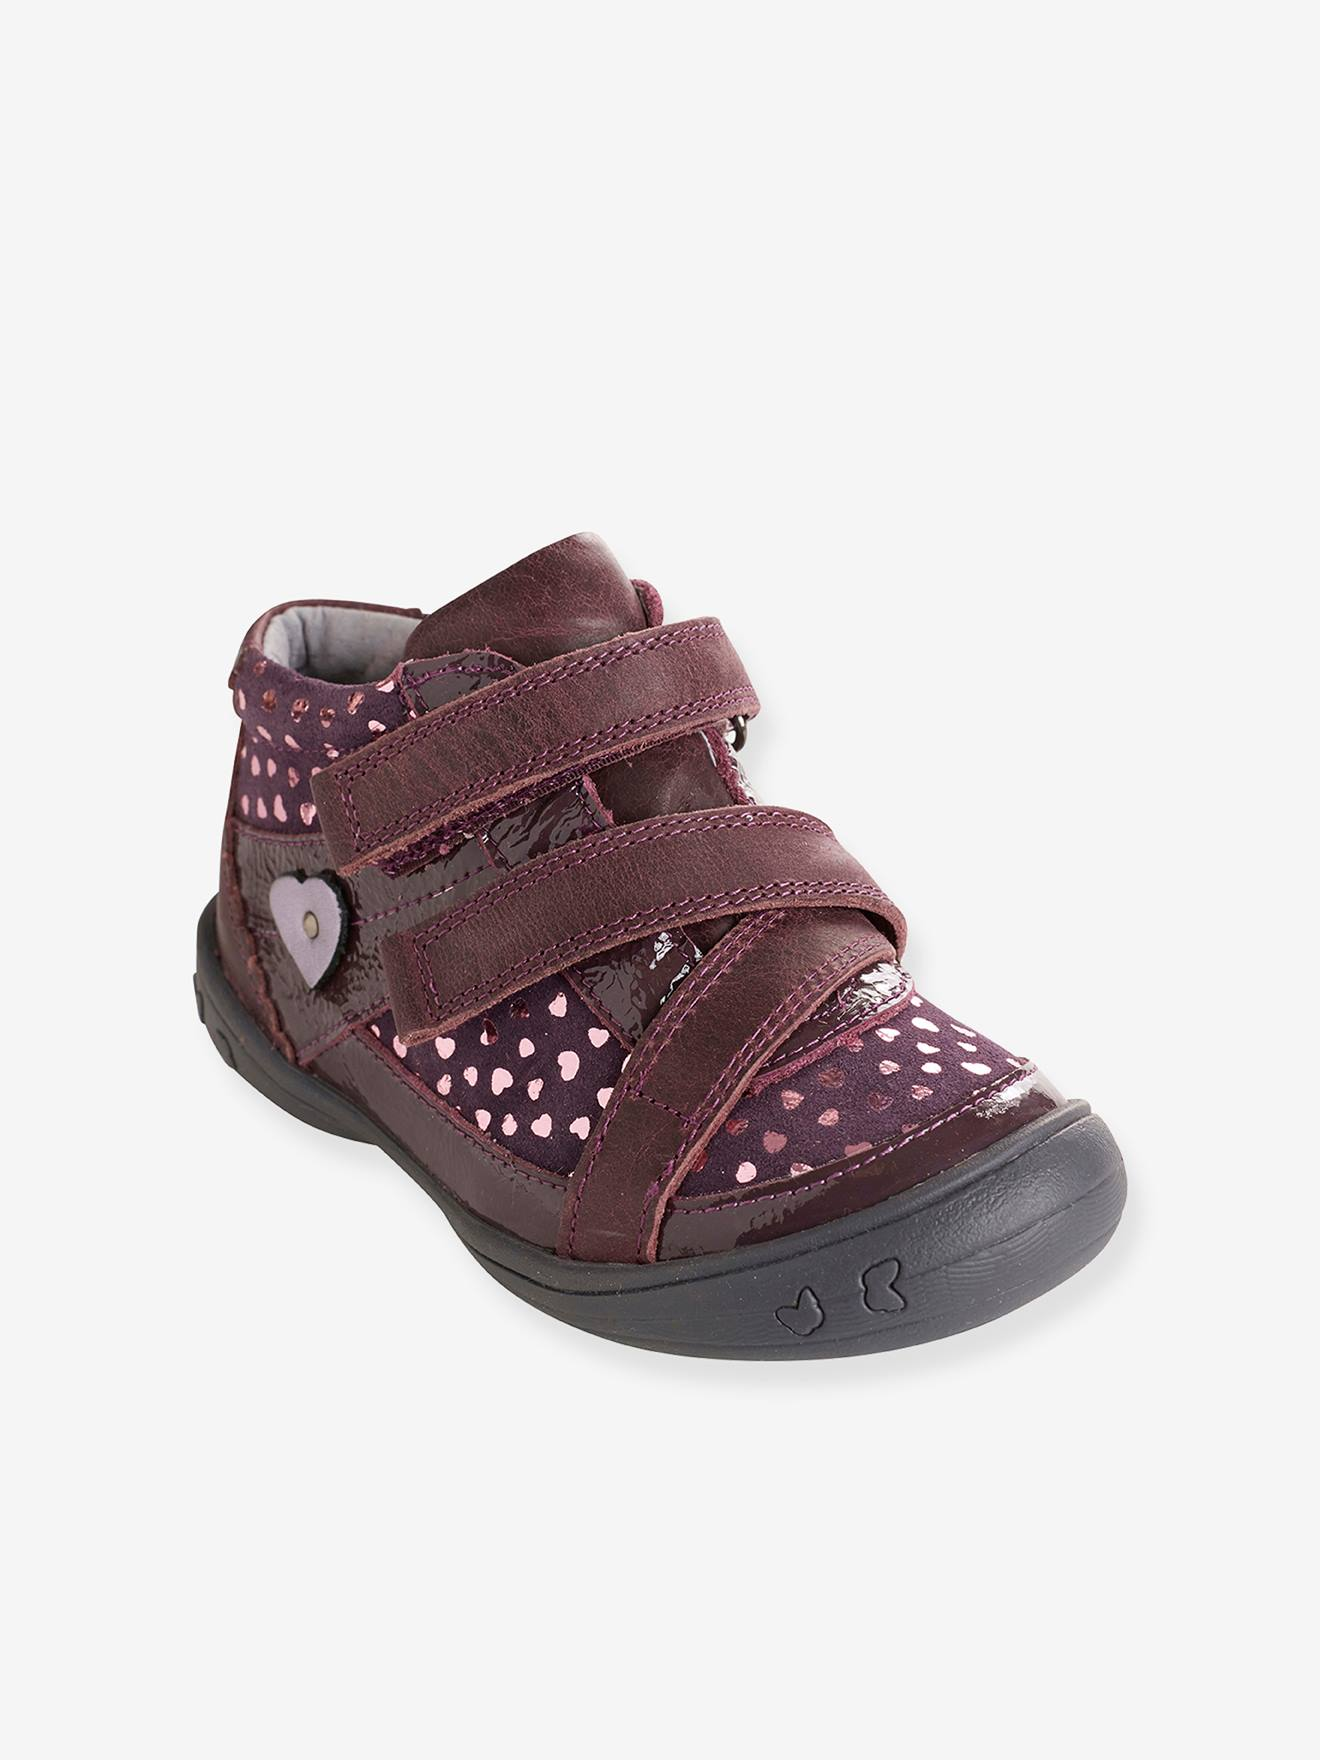 Chaussures Bottines cuir fille collection violet maternelle rqYXwYvxaT